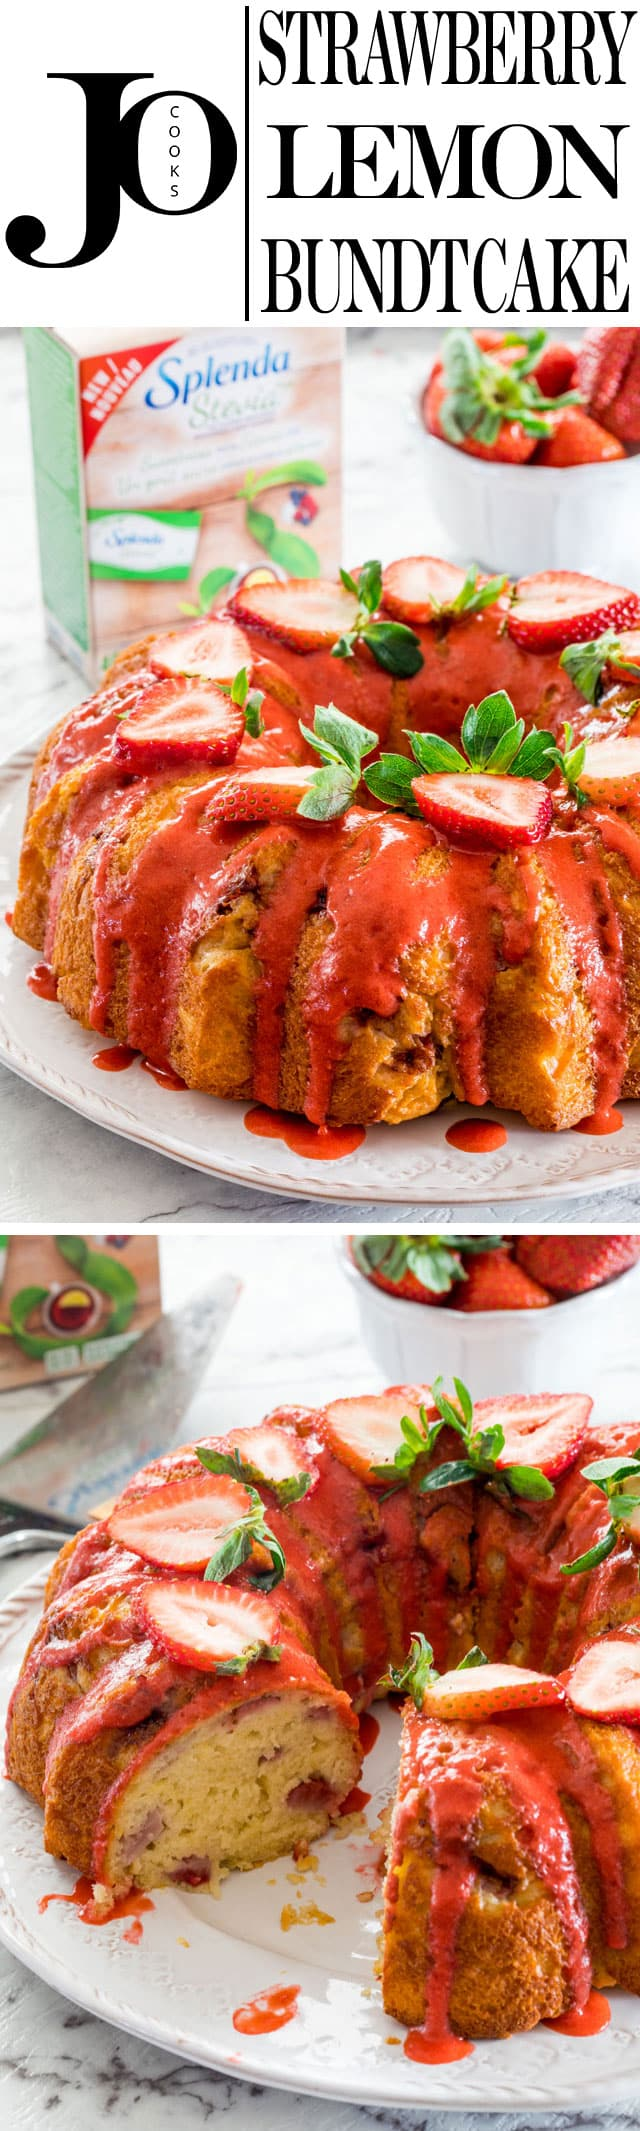 This Strawberry Lemon Bundt Cake is loaded with strawberries and drizzled with a strawberry coulis. Incredibly delicious and best of all it doesn't call for sugar. www.jocooks.com #splenda